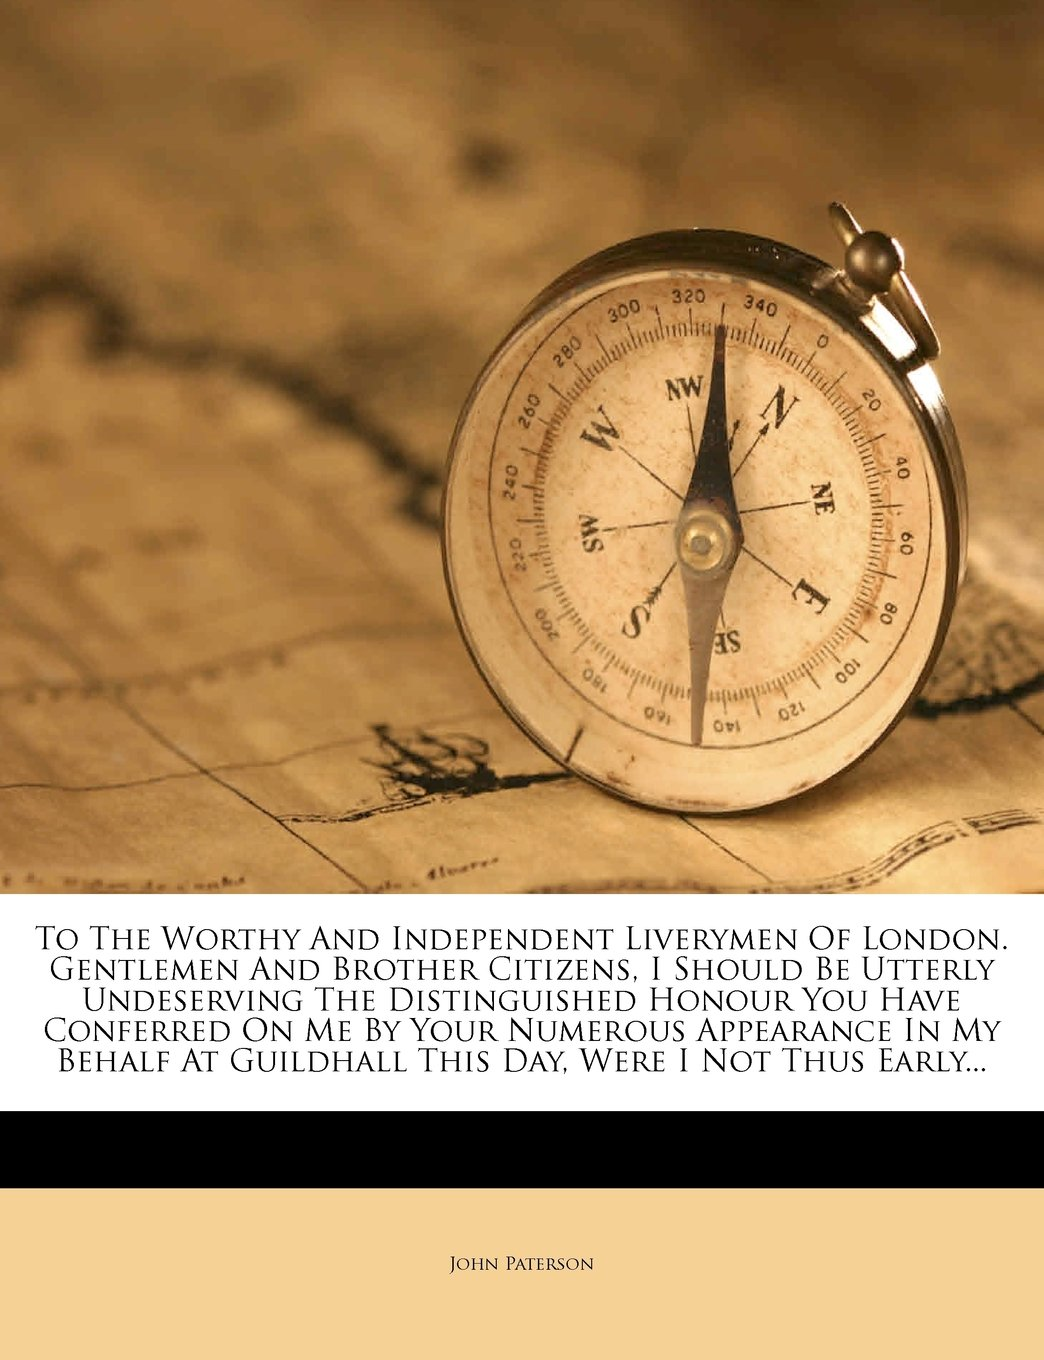 Download To The Worthy And Independent Liverymen Of London. Gentlemen And Brother Citizens, I Should Be Utterly Undeserving The Distinguished Honour You Have ... Guildhall This Day, Were I Not Thus Early... pdf epub